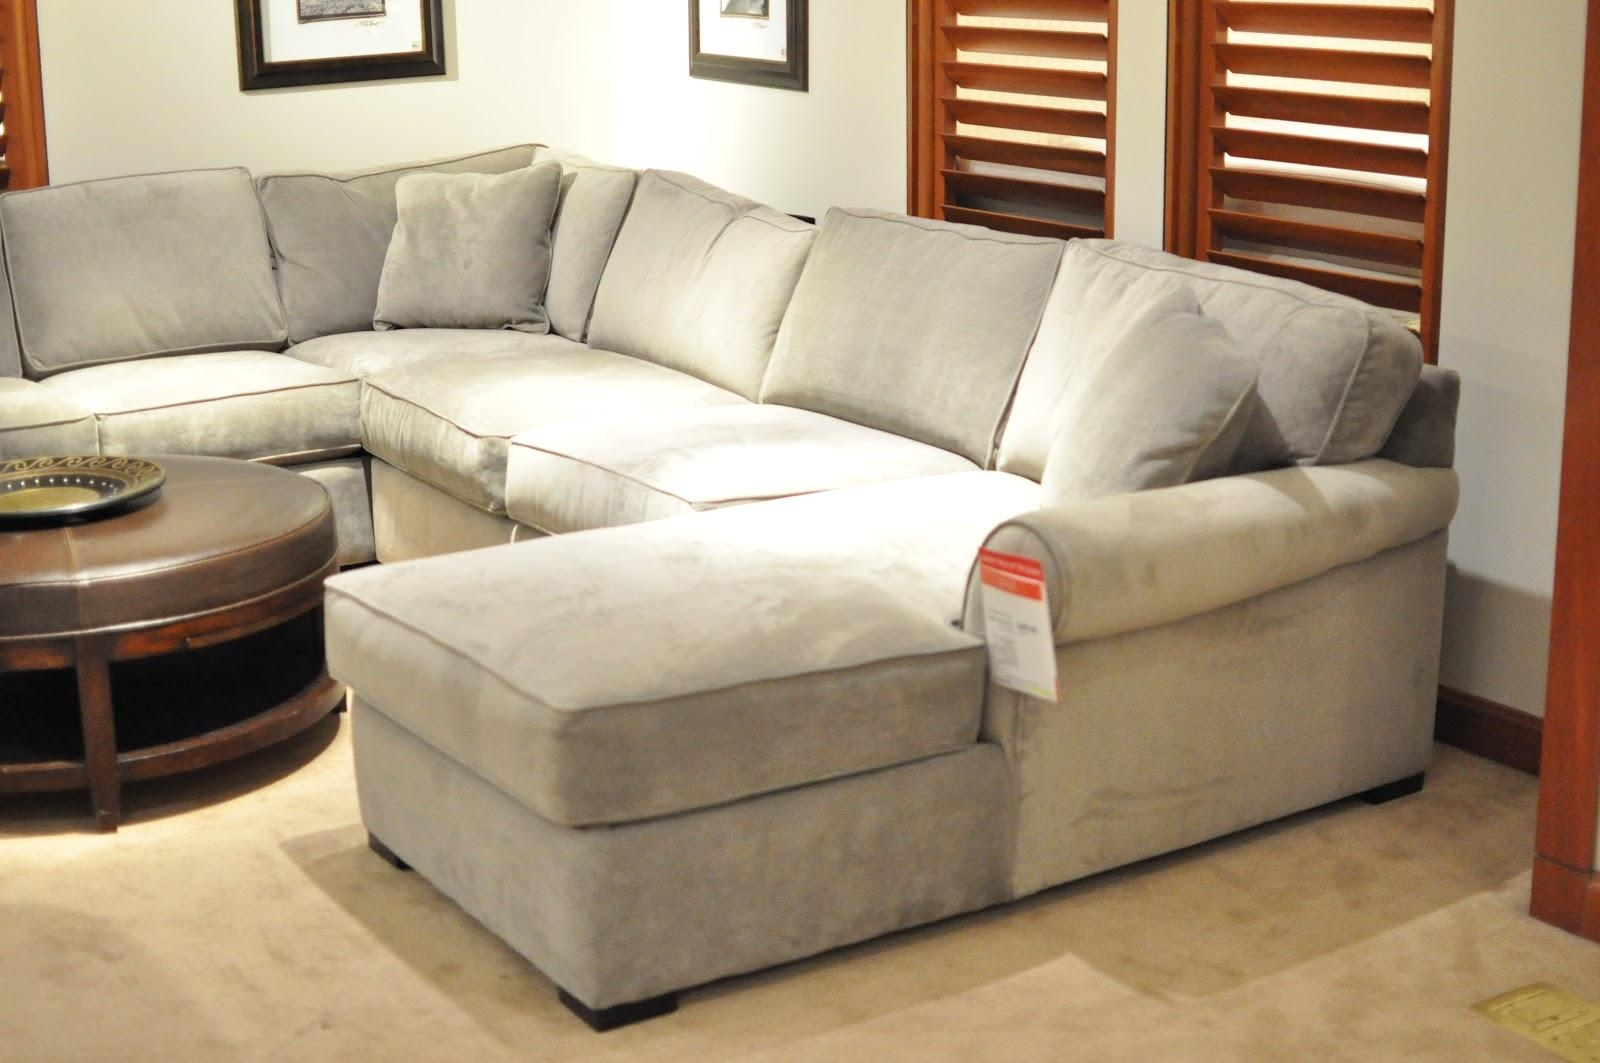 Furniture: Macys Couches | L Shaped Sectional | Pottery Barn Sectional With Regard To Macys Sectional (Image 5 of 20)